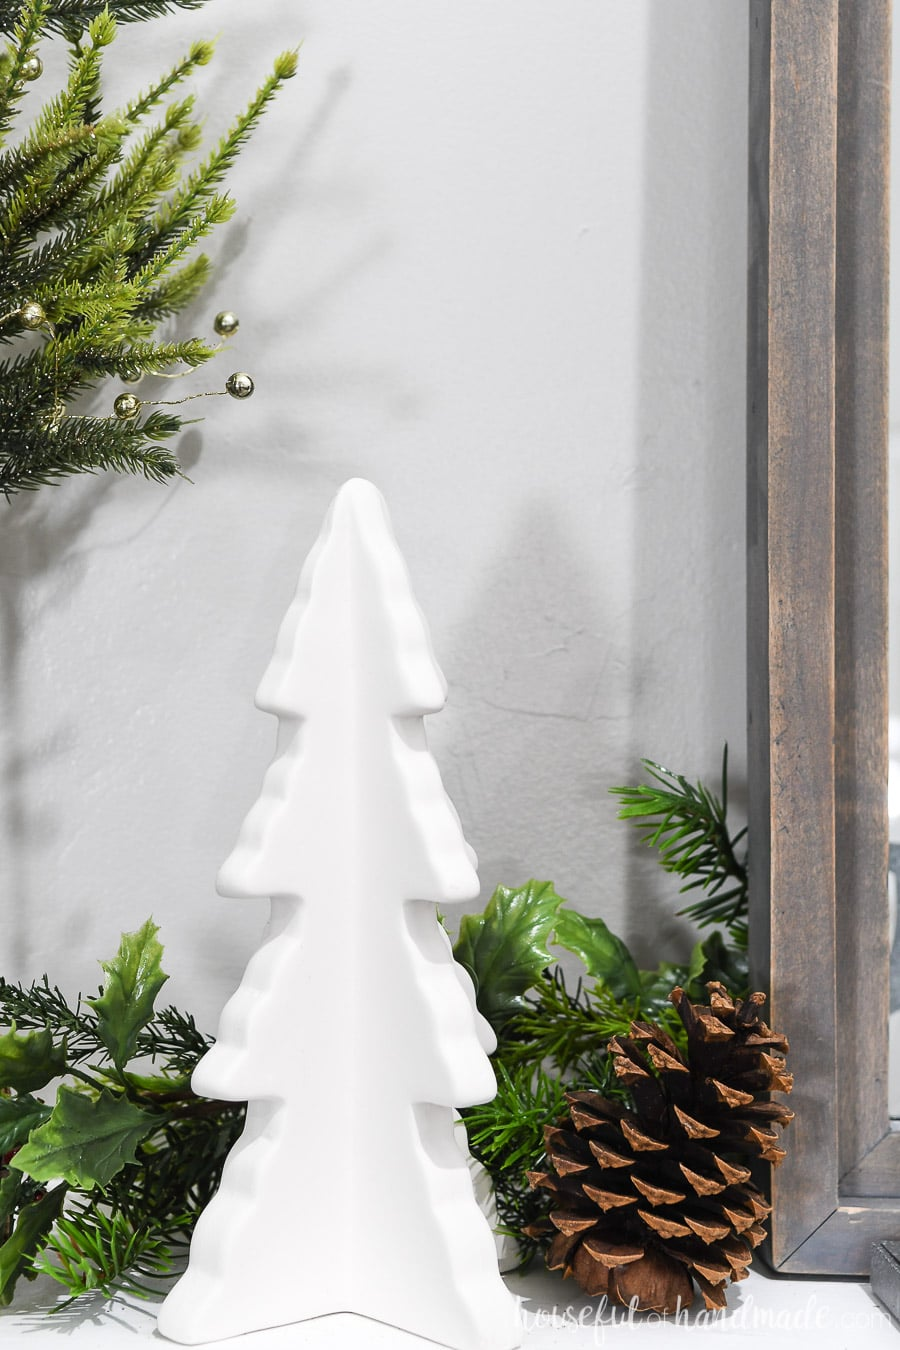 Close up of the ceramic Christmas tree on the classic Christmas mantel.